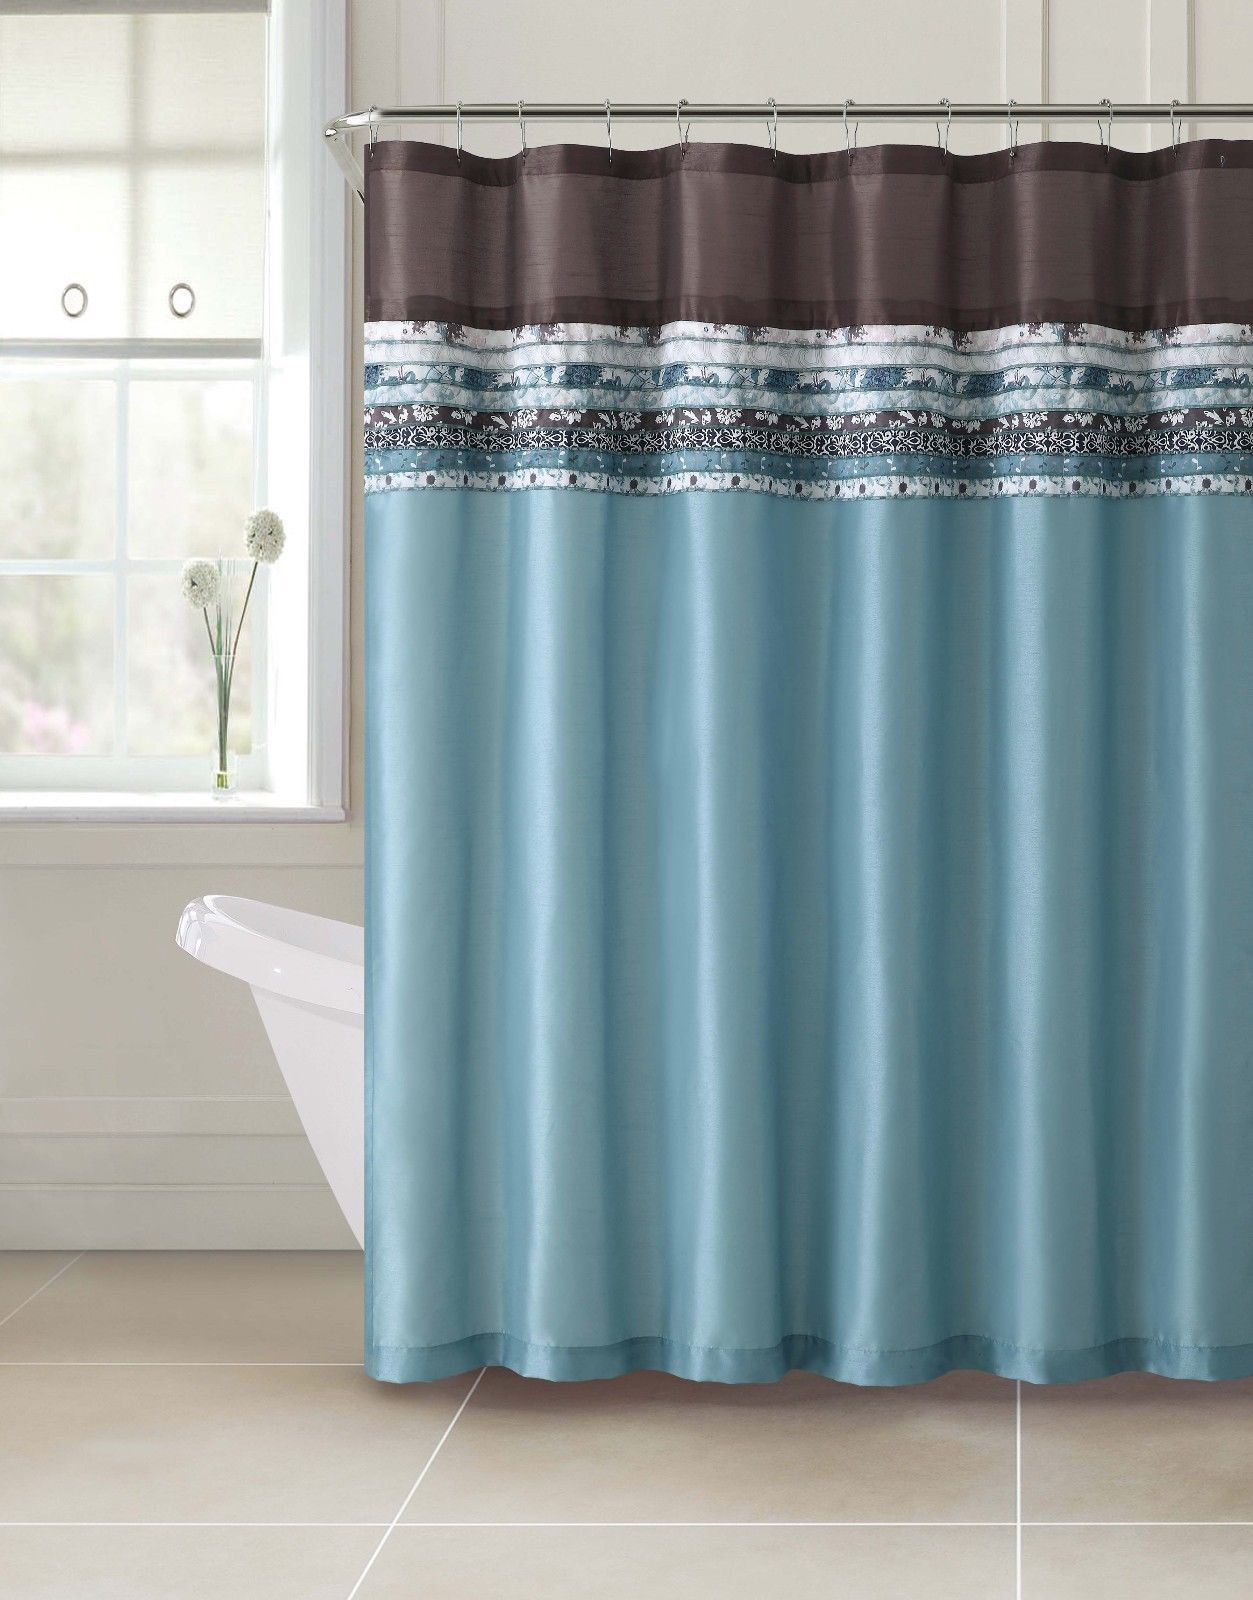 Poetica Faux Silk Aqua Blue Teal Brown Turquoise Fabric Bathroom Shower Curtain Brown Shower Curtain Blue Shower Curtains Brown Bathroom Decor